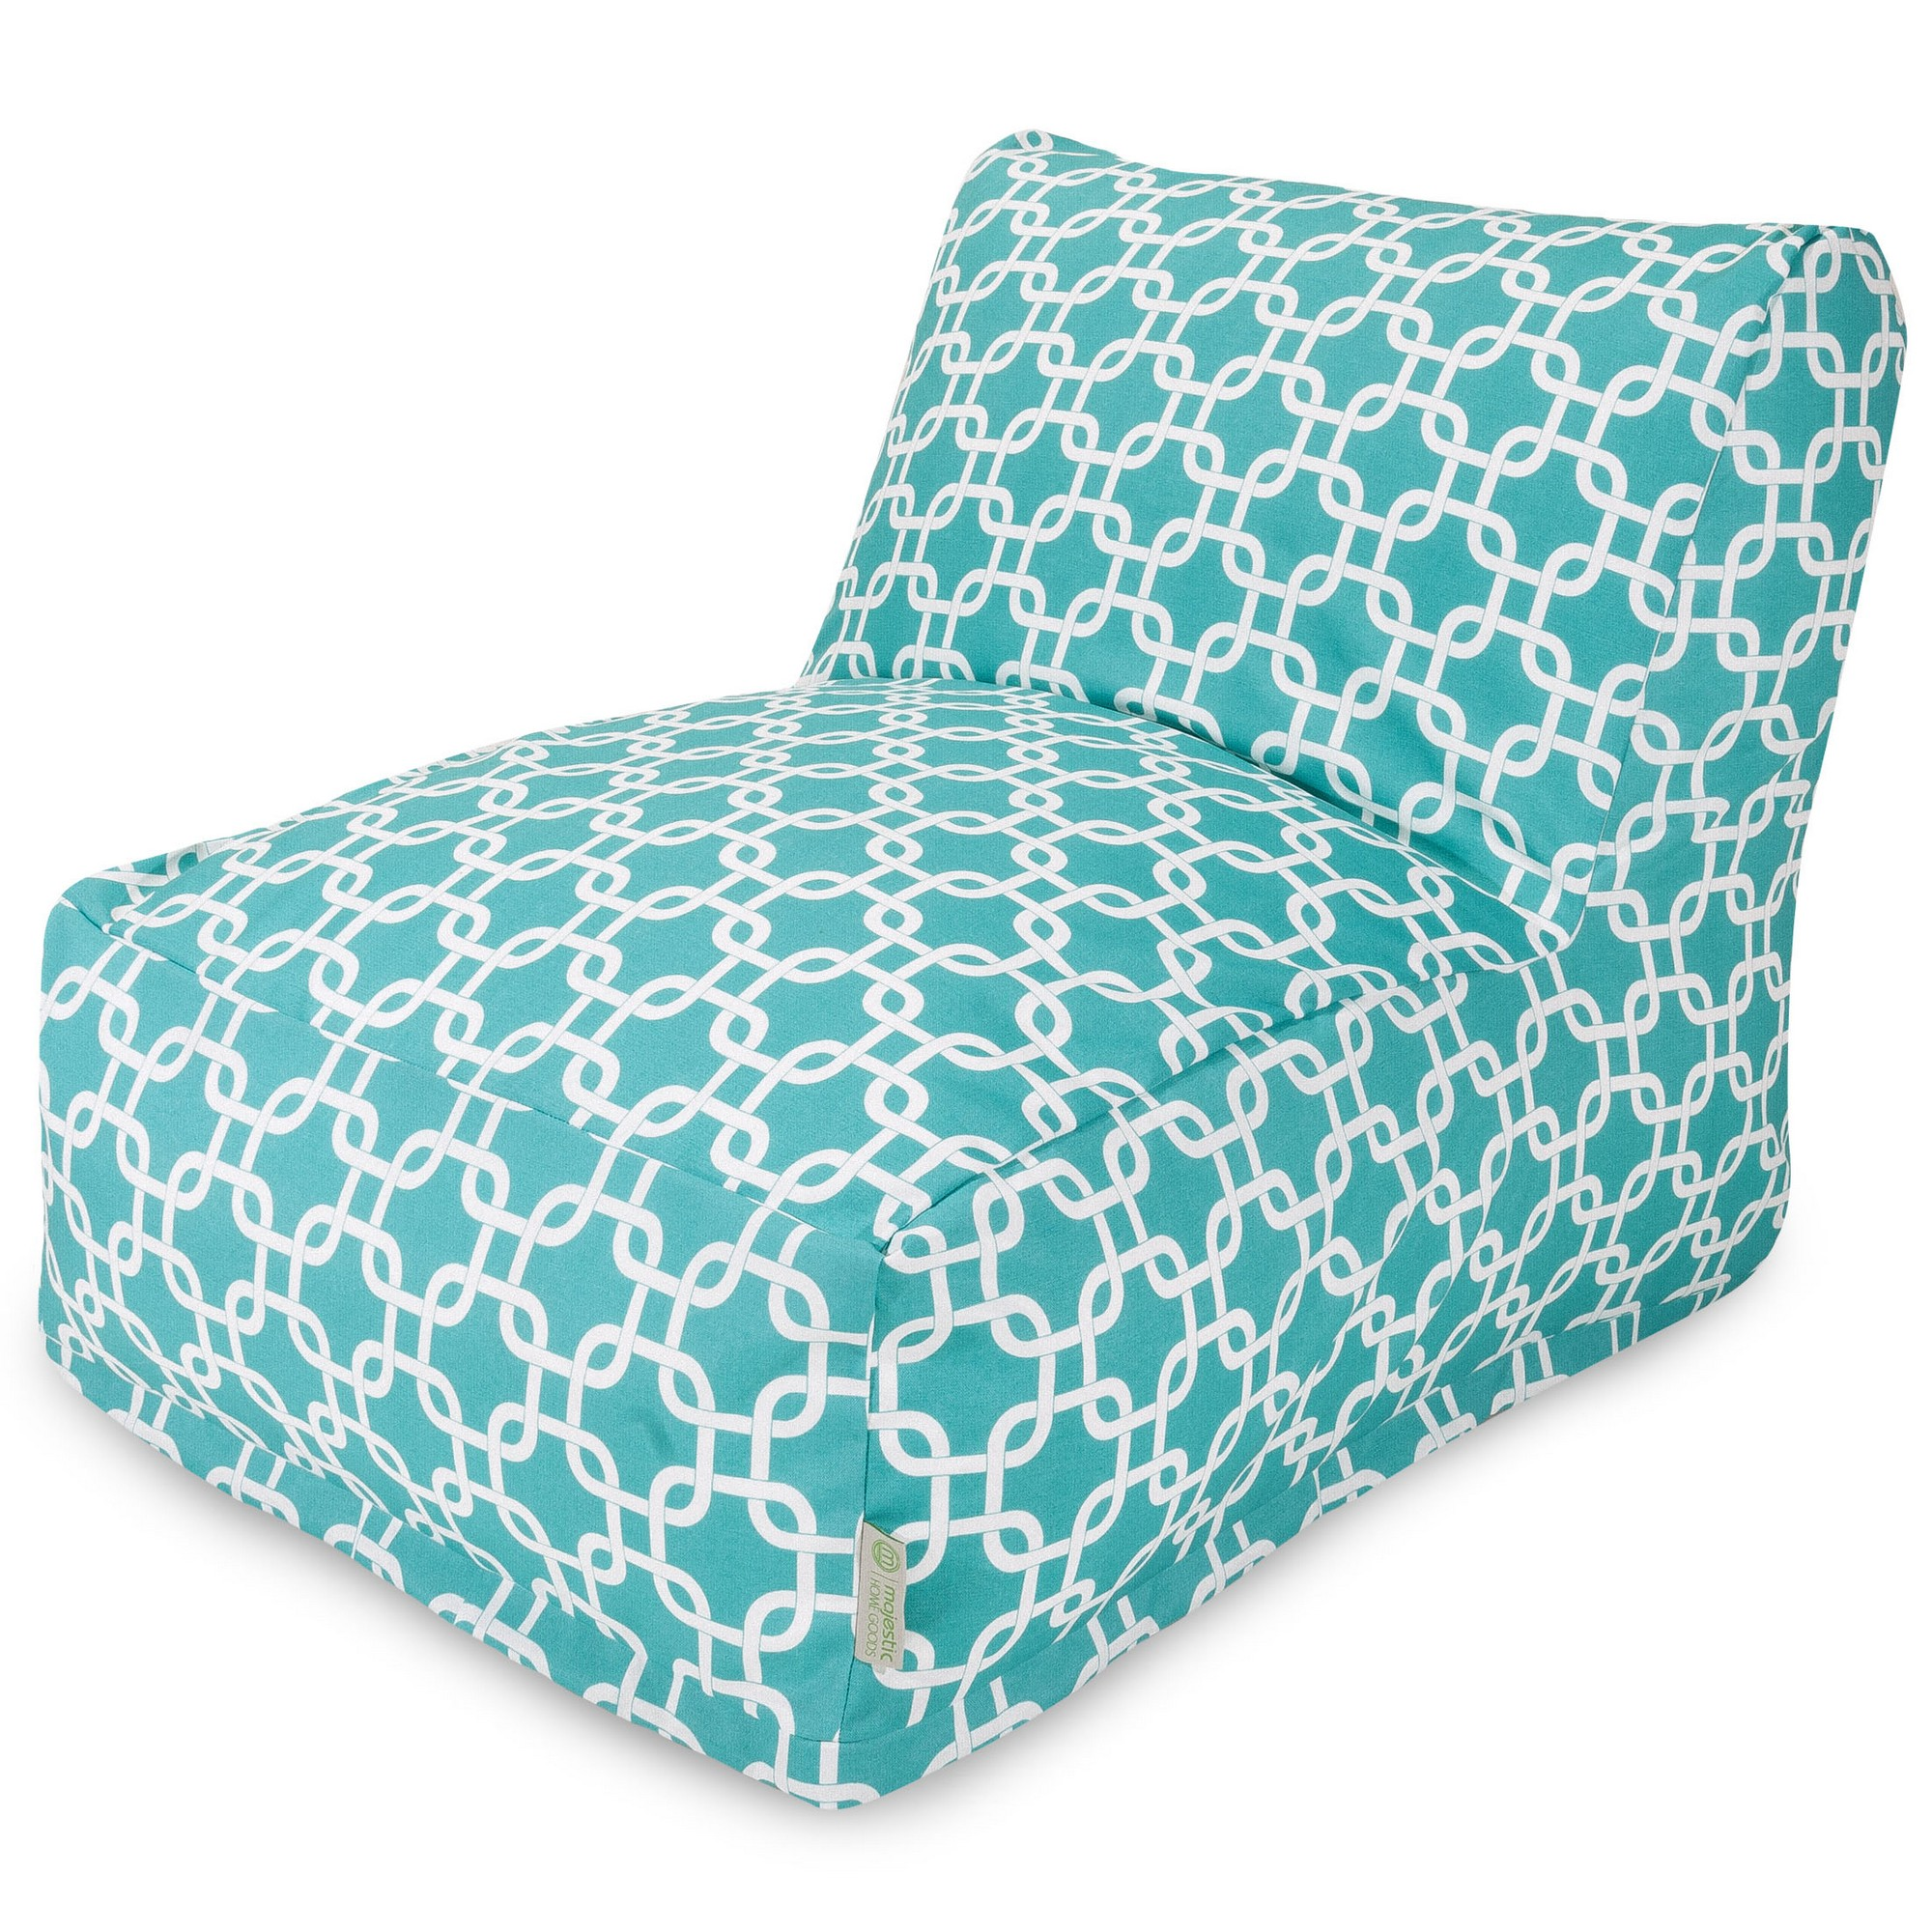 Majestic Home Goods Indoor Outdoor Black Links Chair Lounger Bean Bag 36 in L x 27 in W x 24 in H